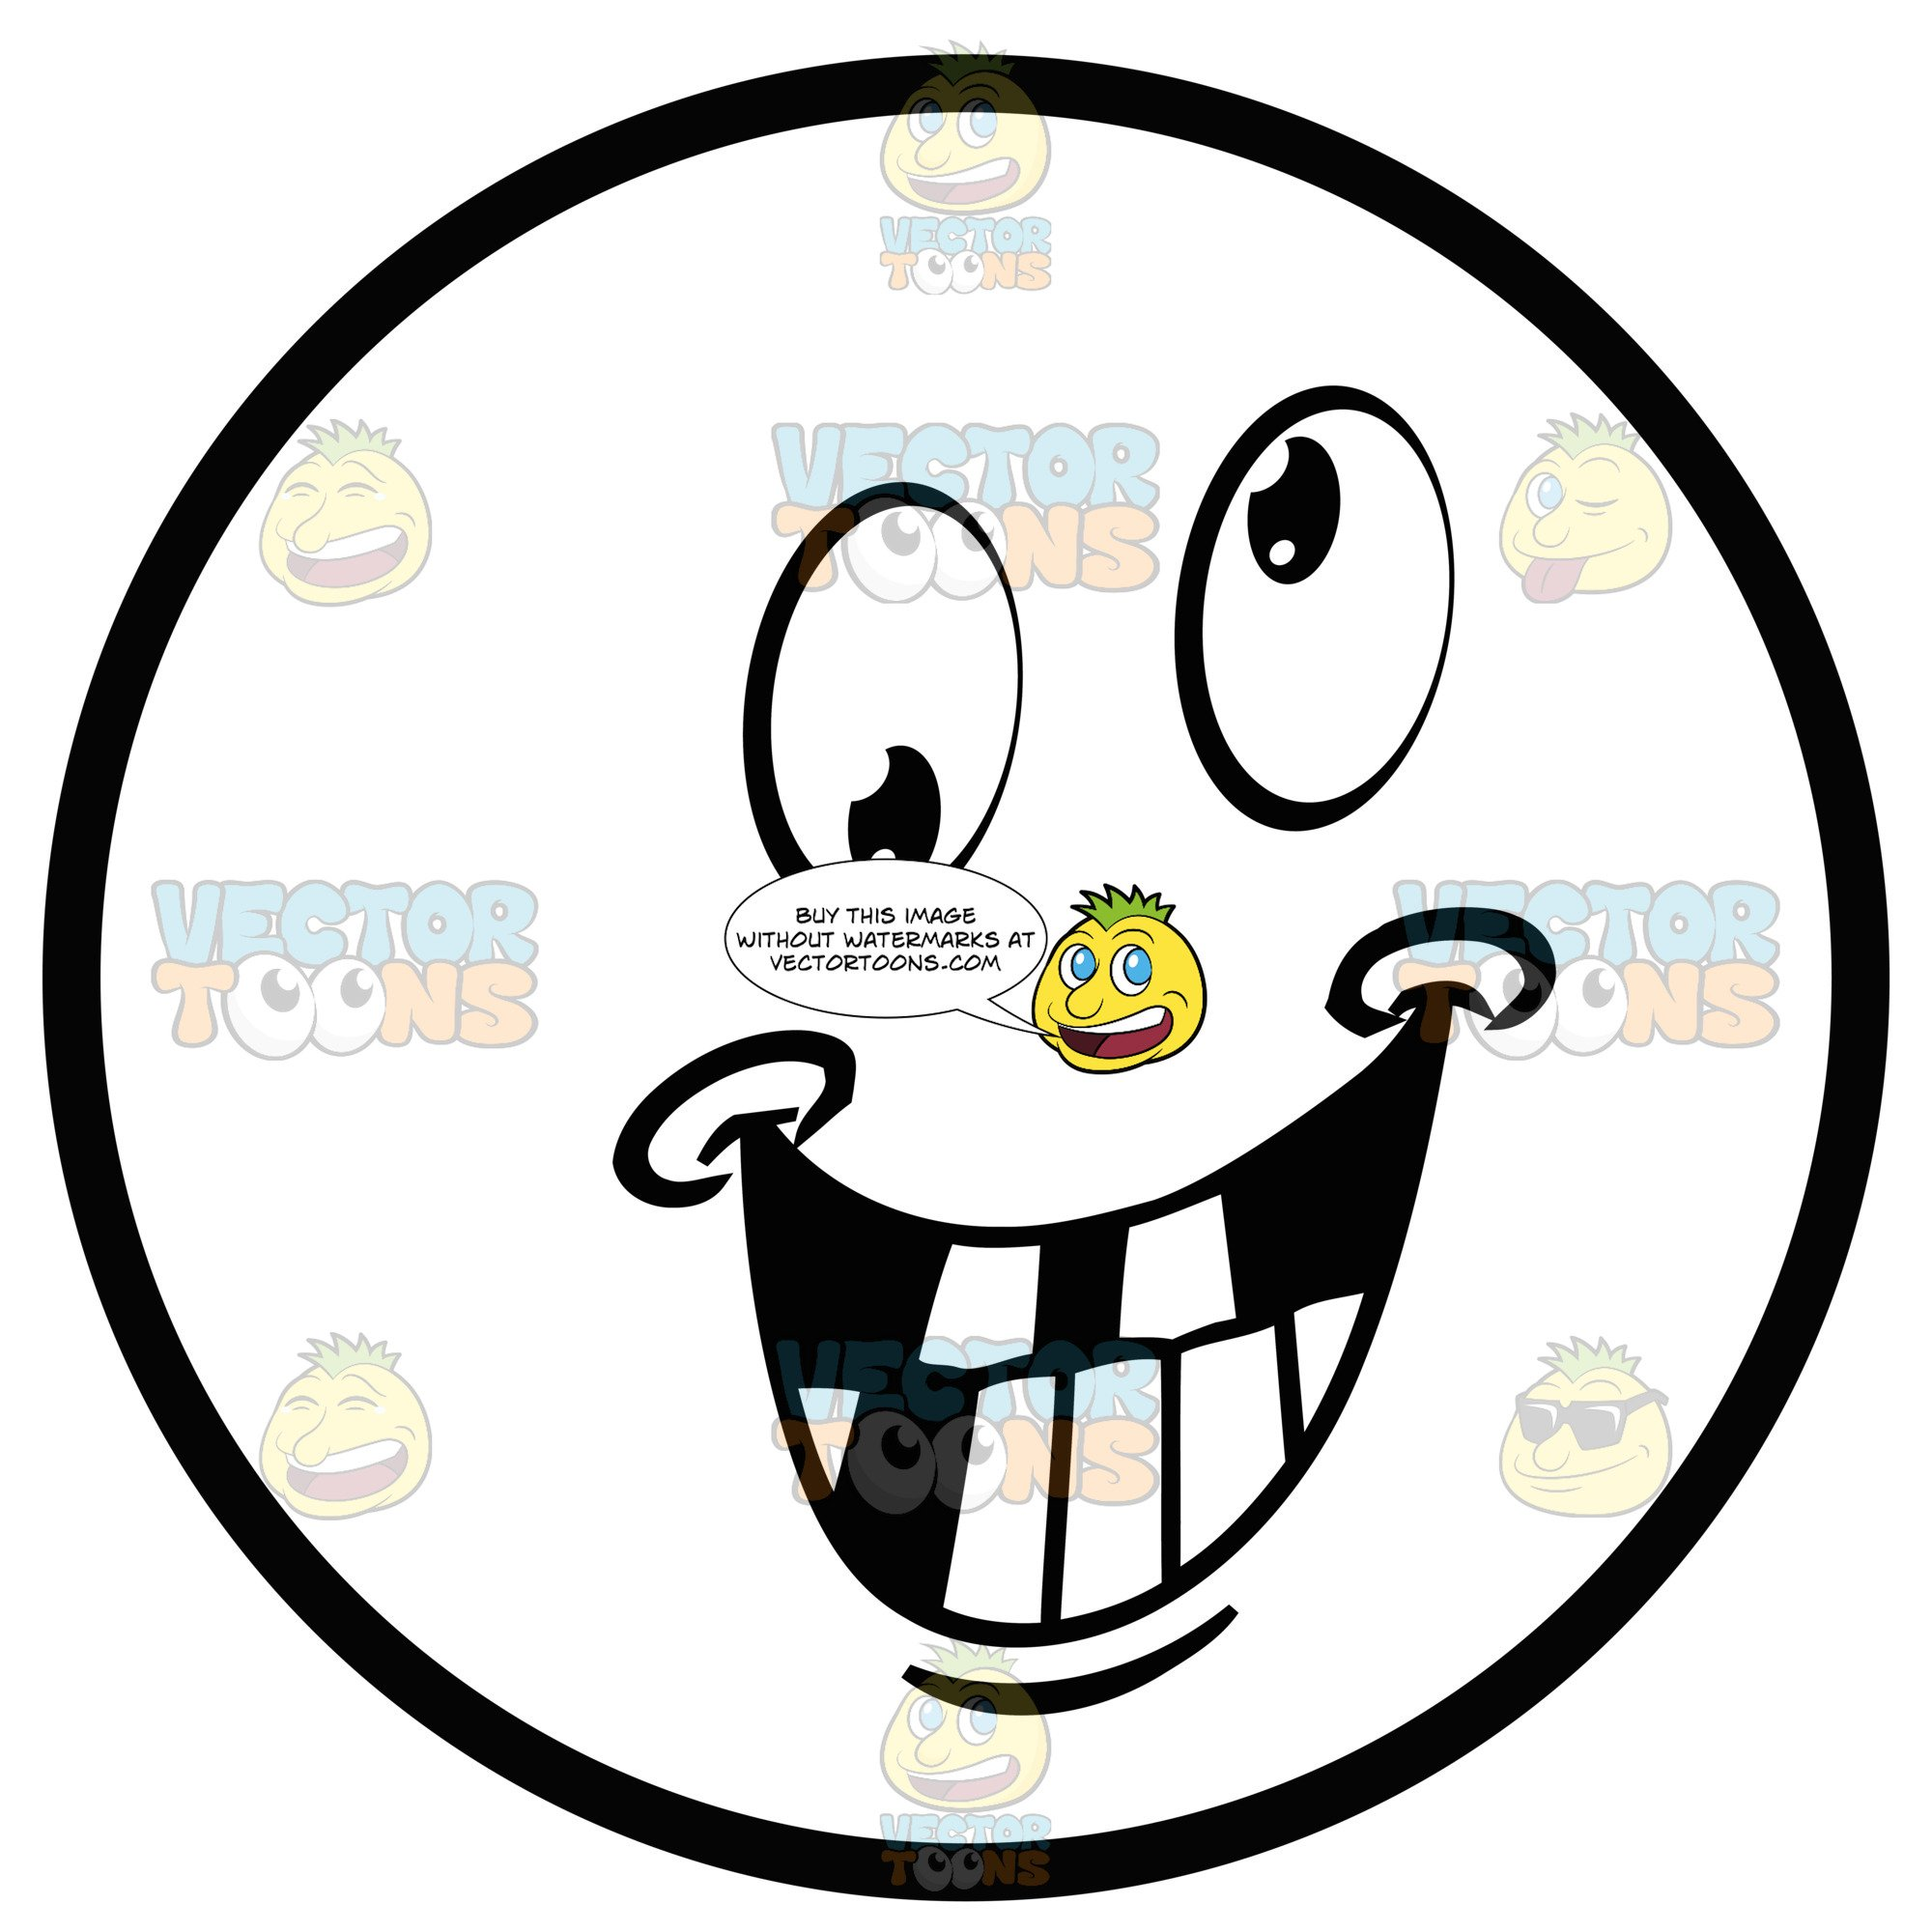 Crazy Large Eyed Black And White Smiley Face Emoticon Grinning, Missing  Teeth.